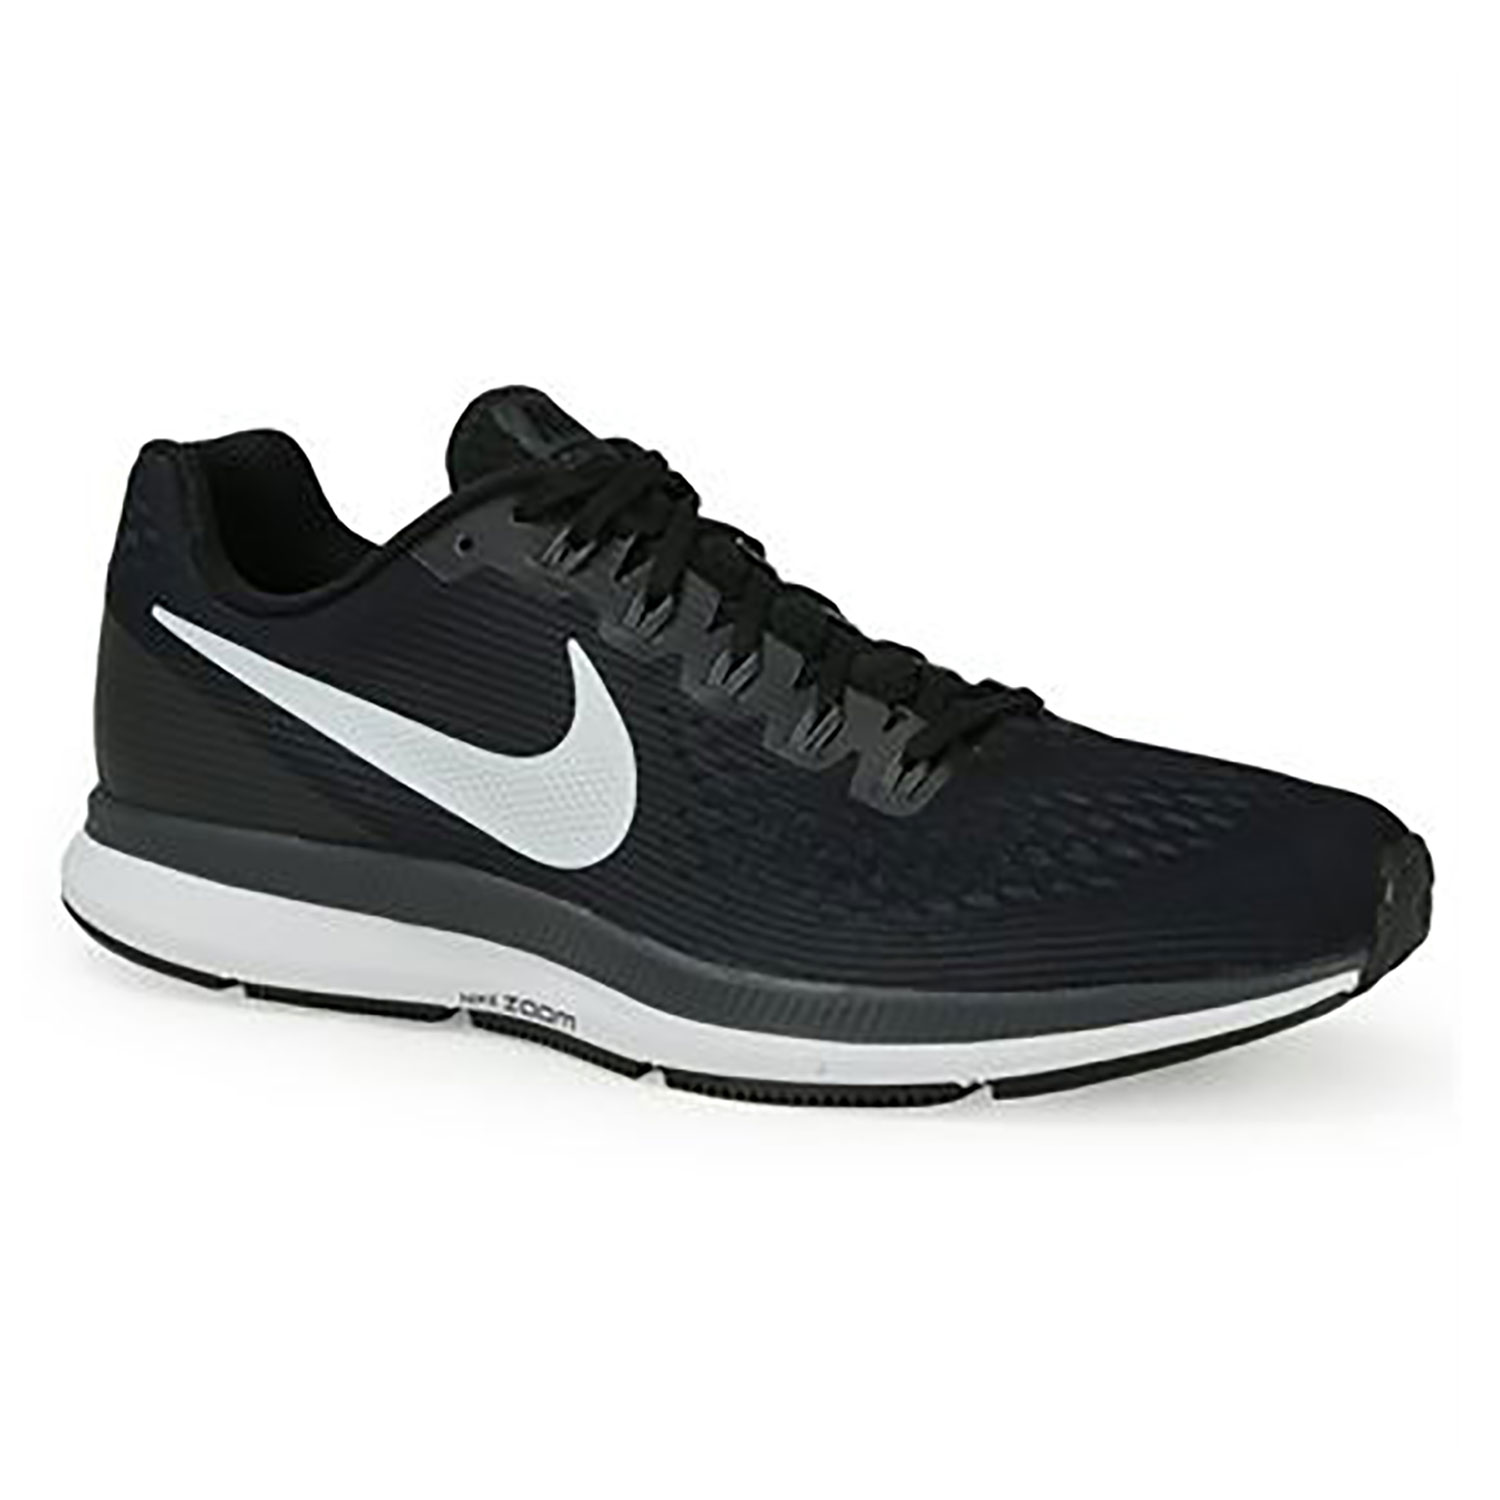 32e3b9decf7 Nike Air Zoom Pegasus 34 Mens Running Shoe